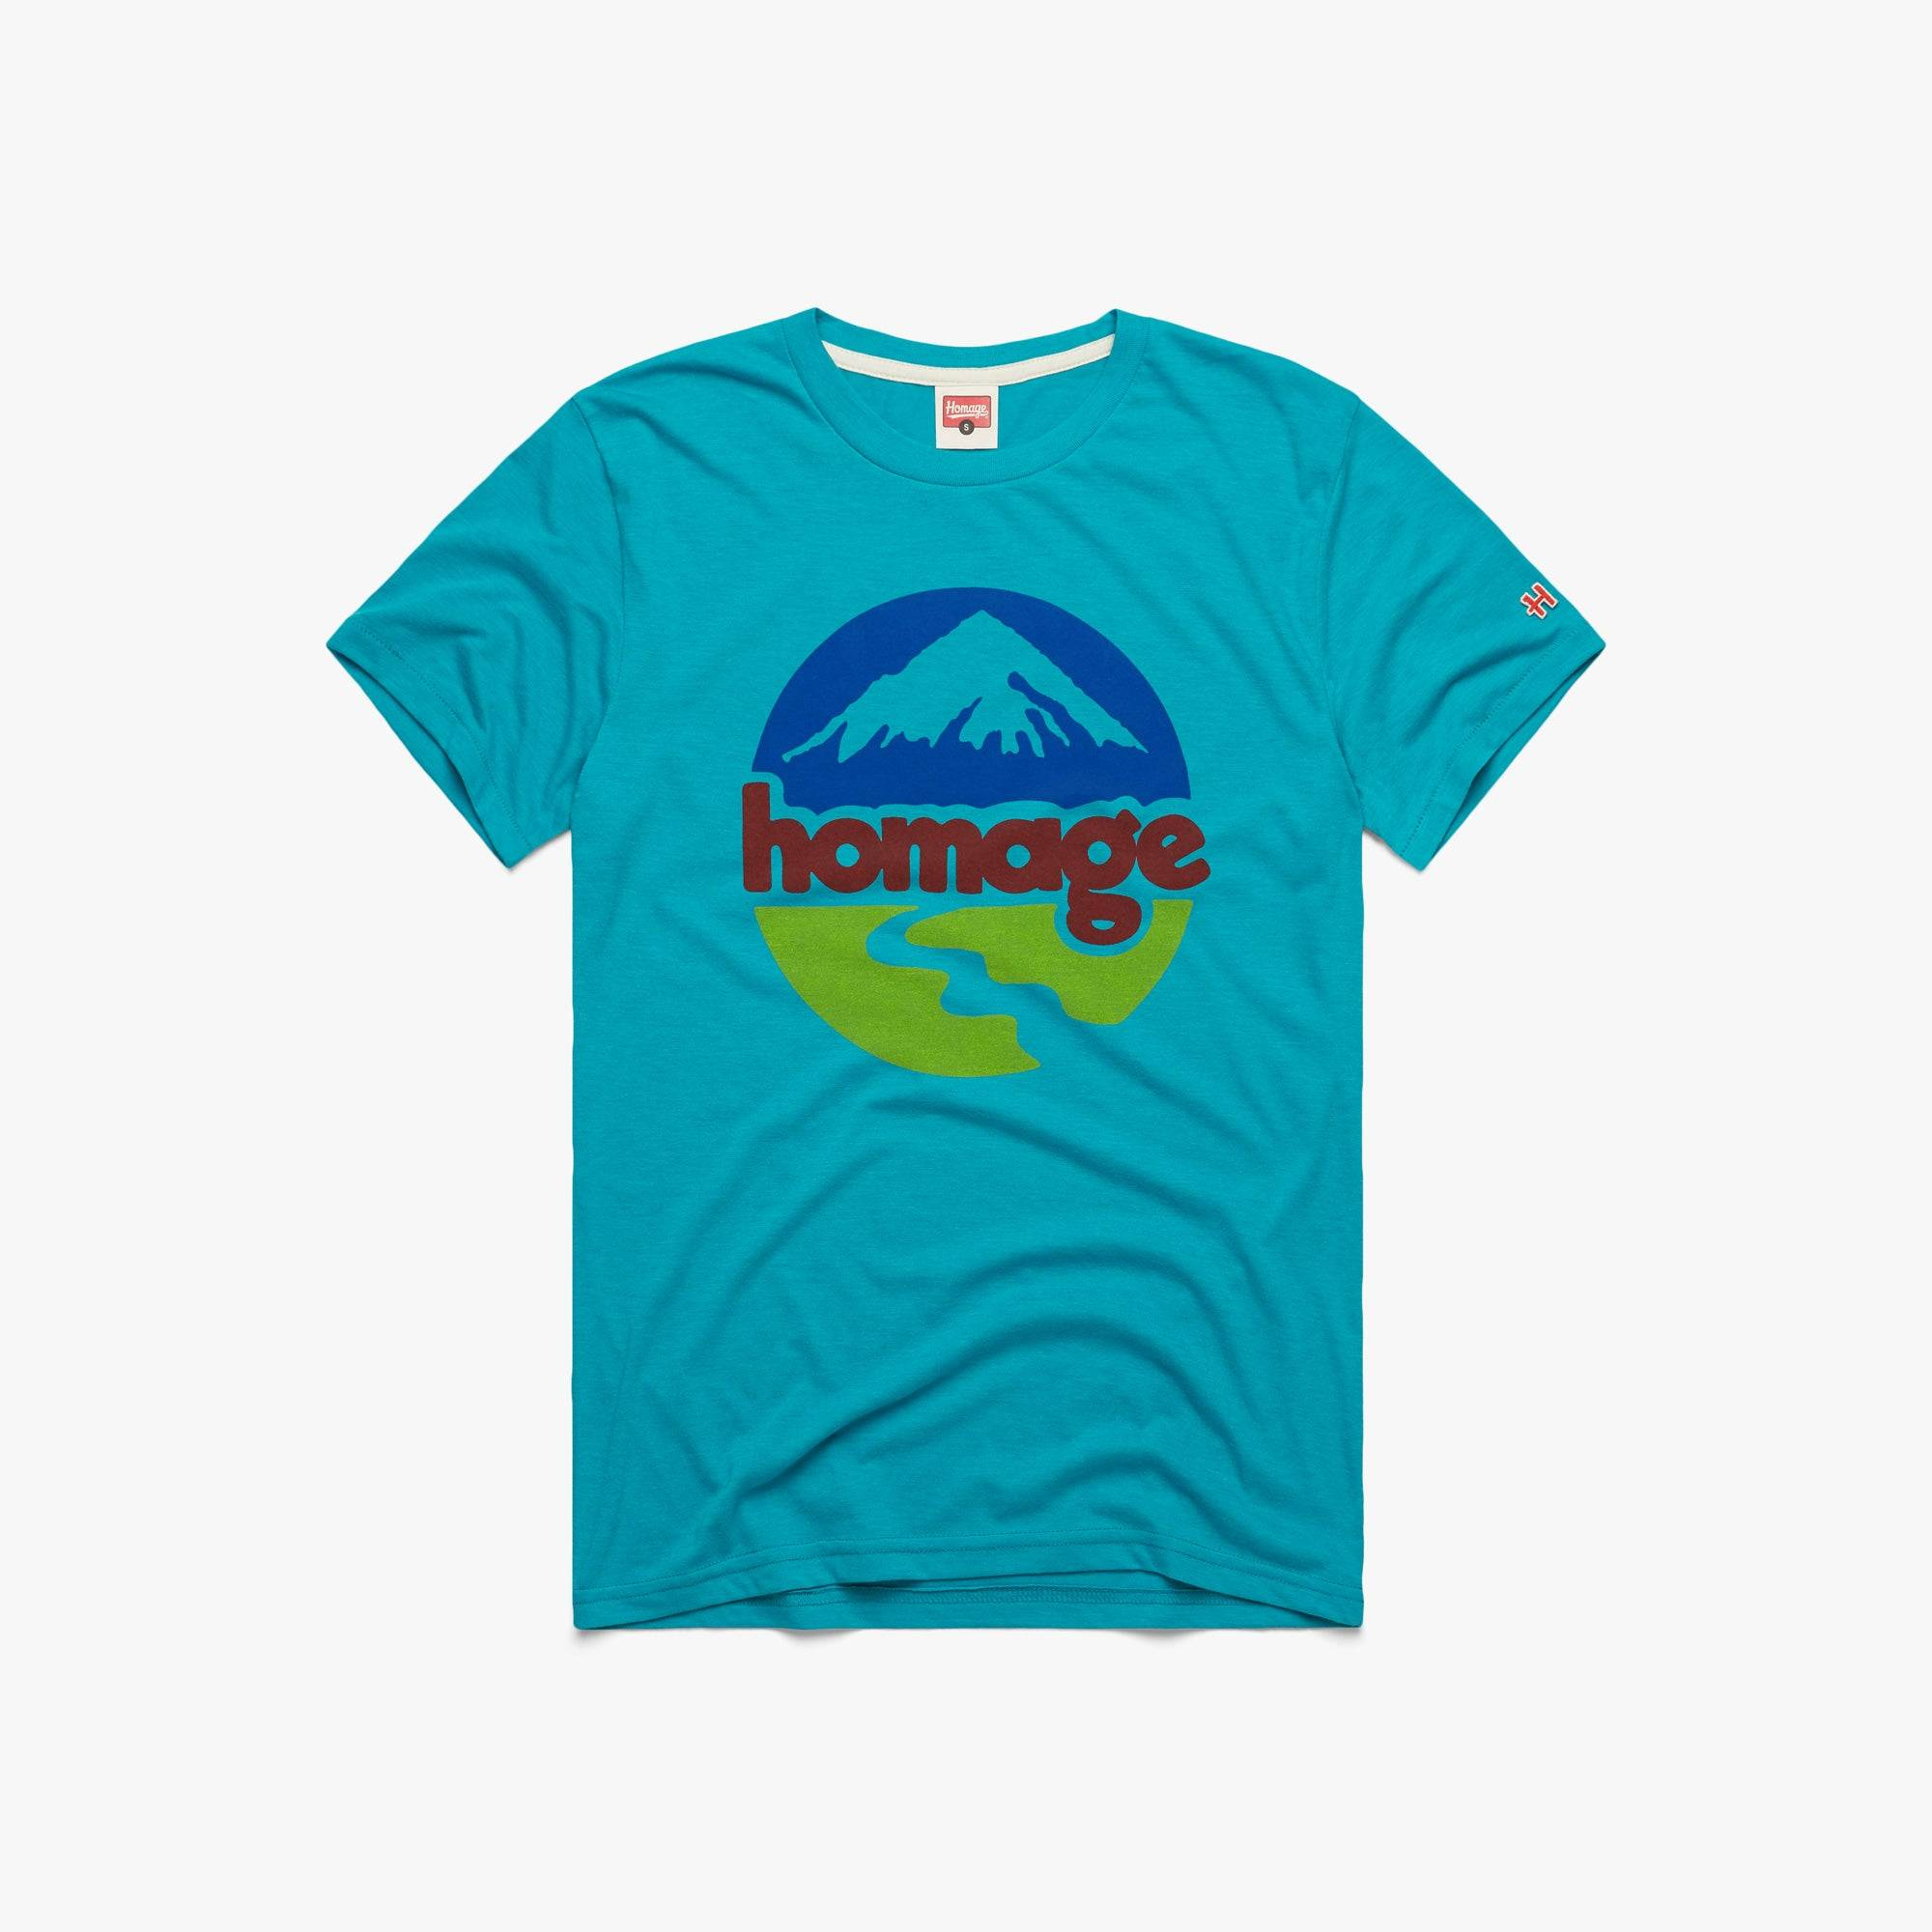 HOMAGE Outdoor in  Blue (Size: S)